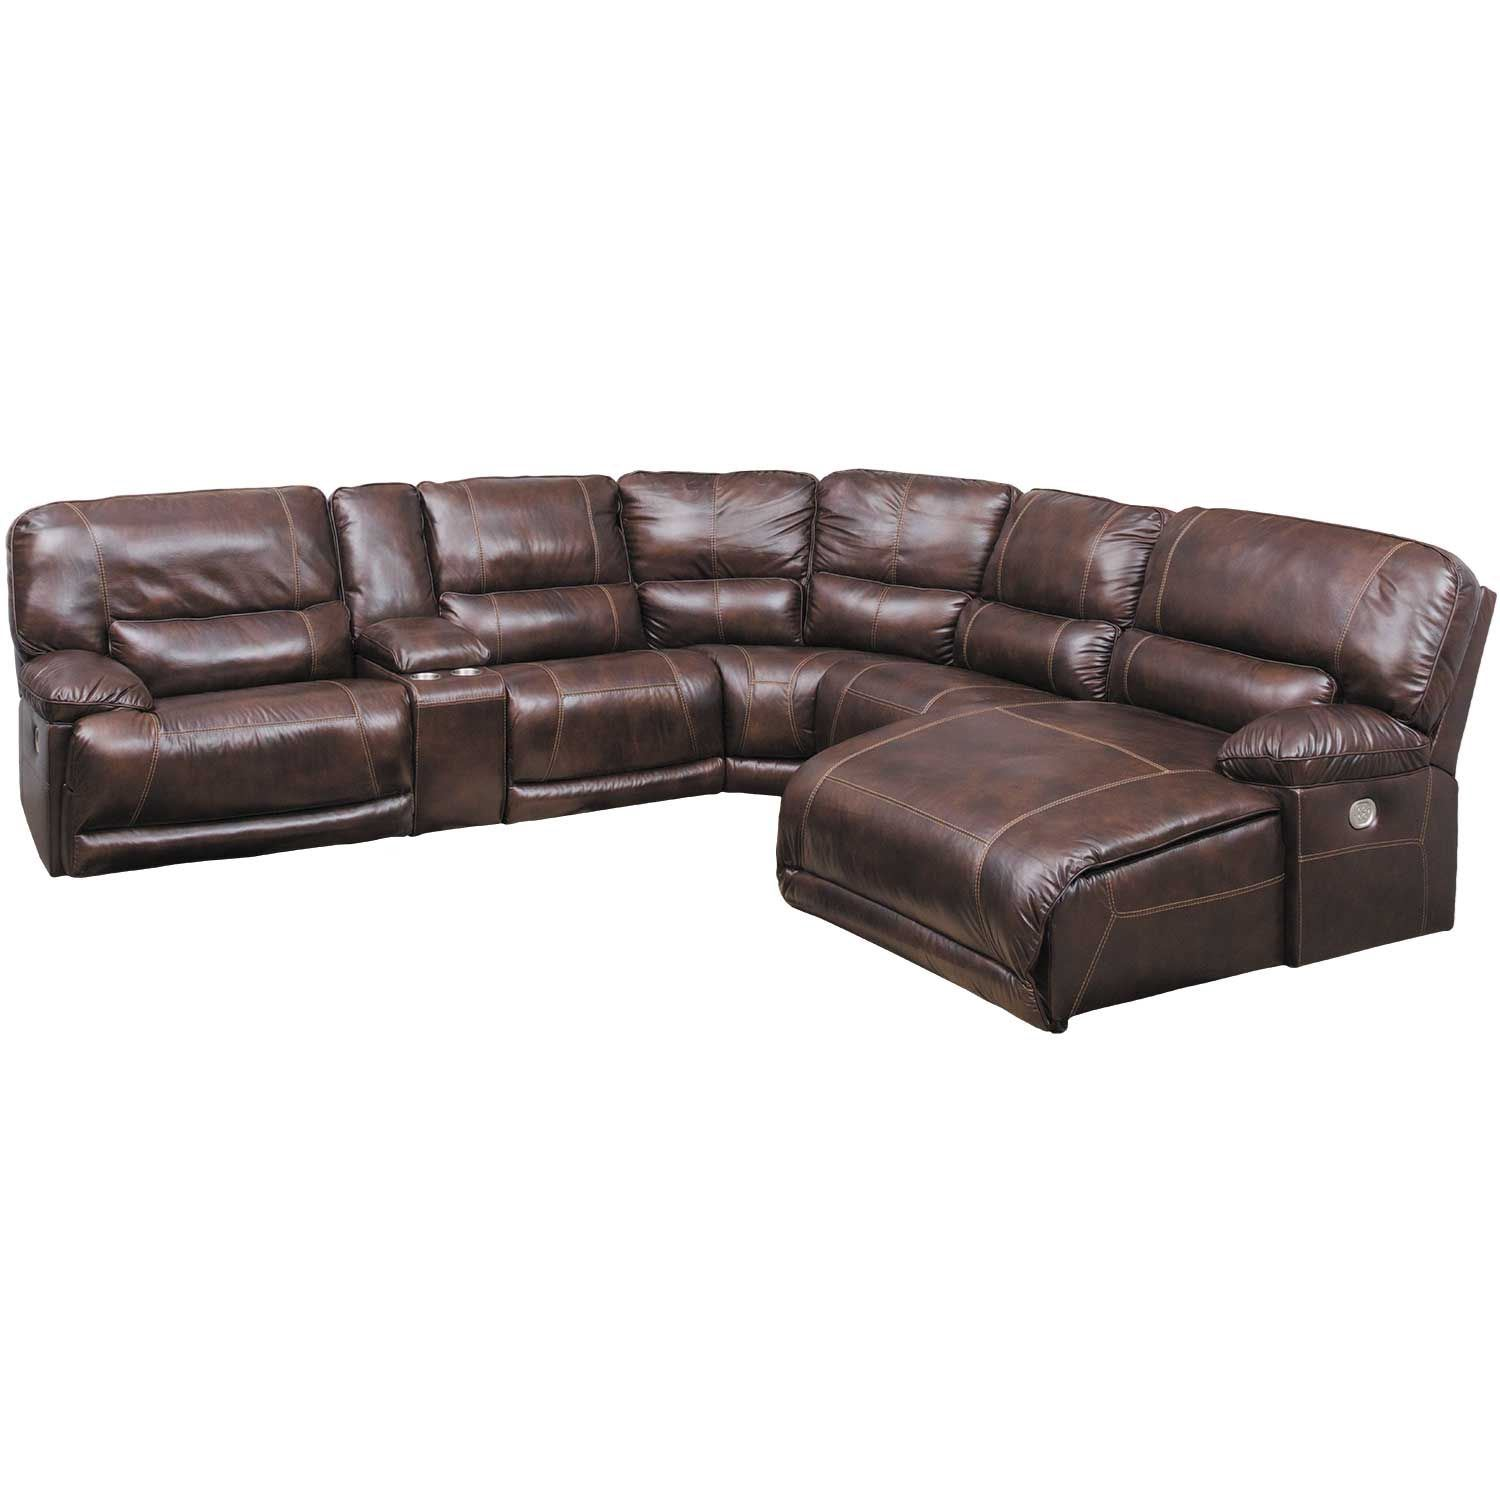 Picture Of Killamey 6 Piece Power Reclining Sectional With RAF Chaise